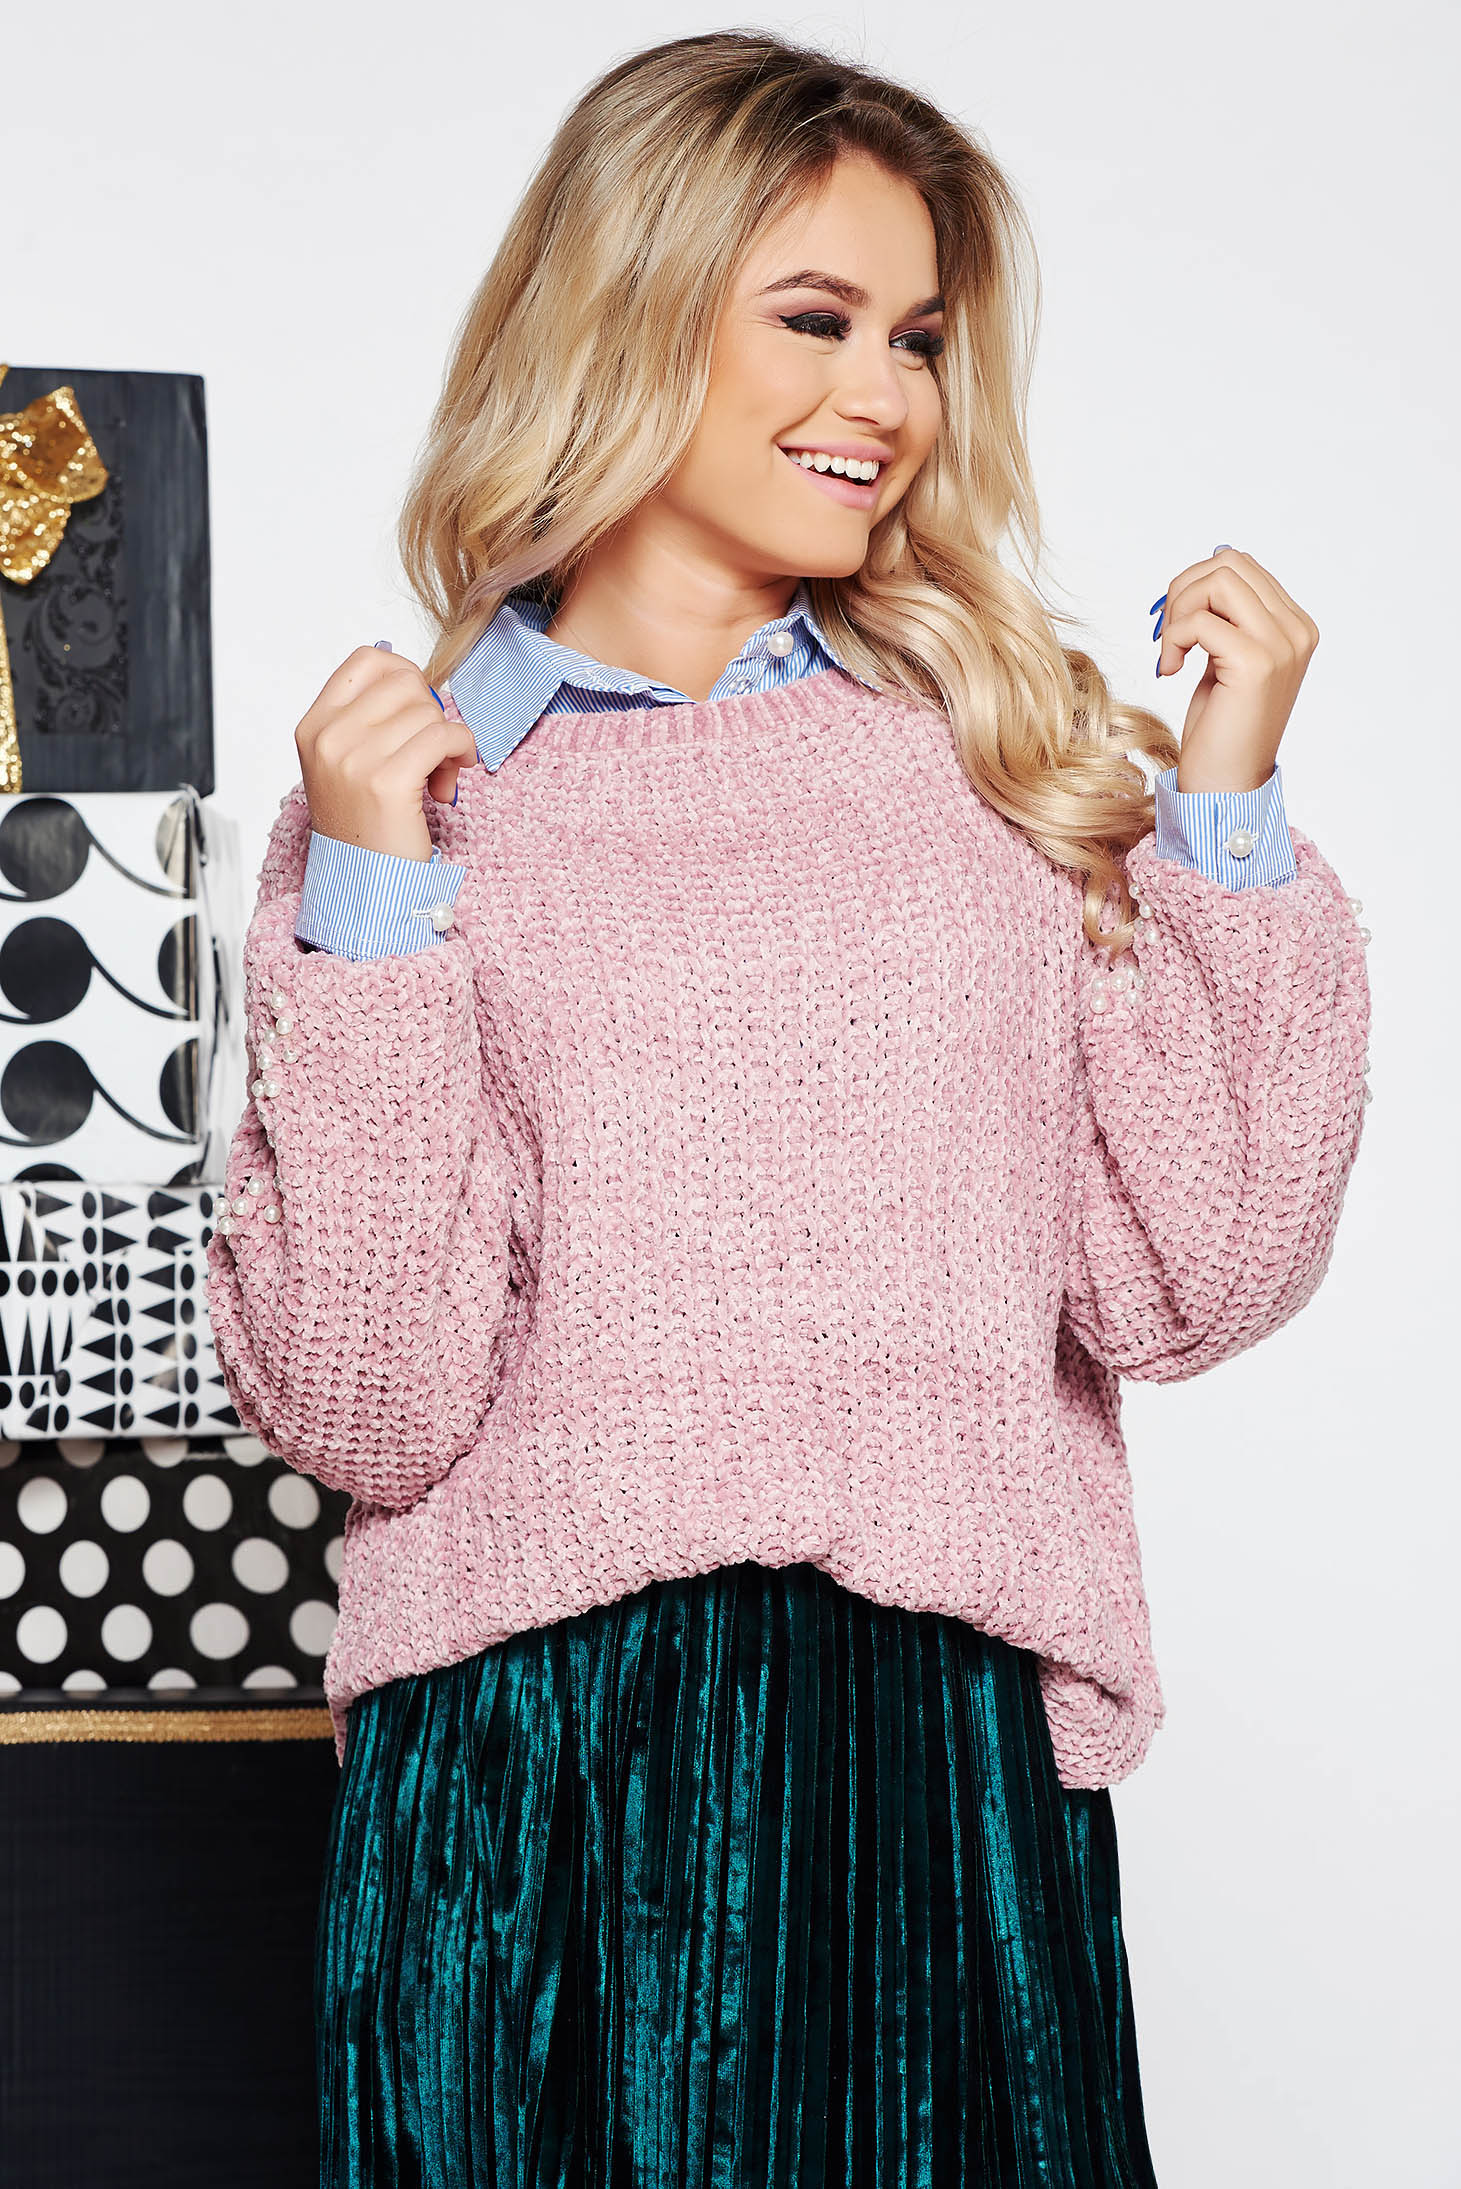 SunShine rosa casual flared sweater knitted fabric from velvet fabric with pearls